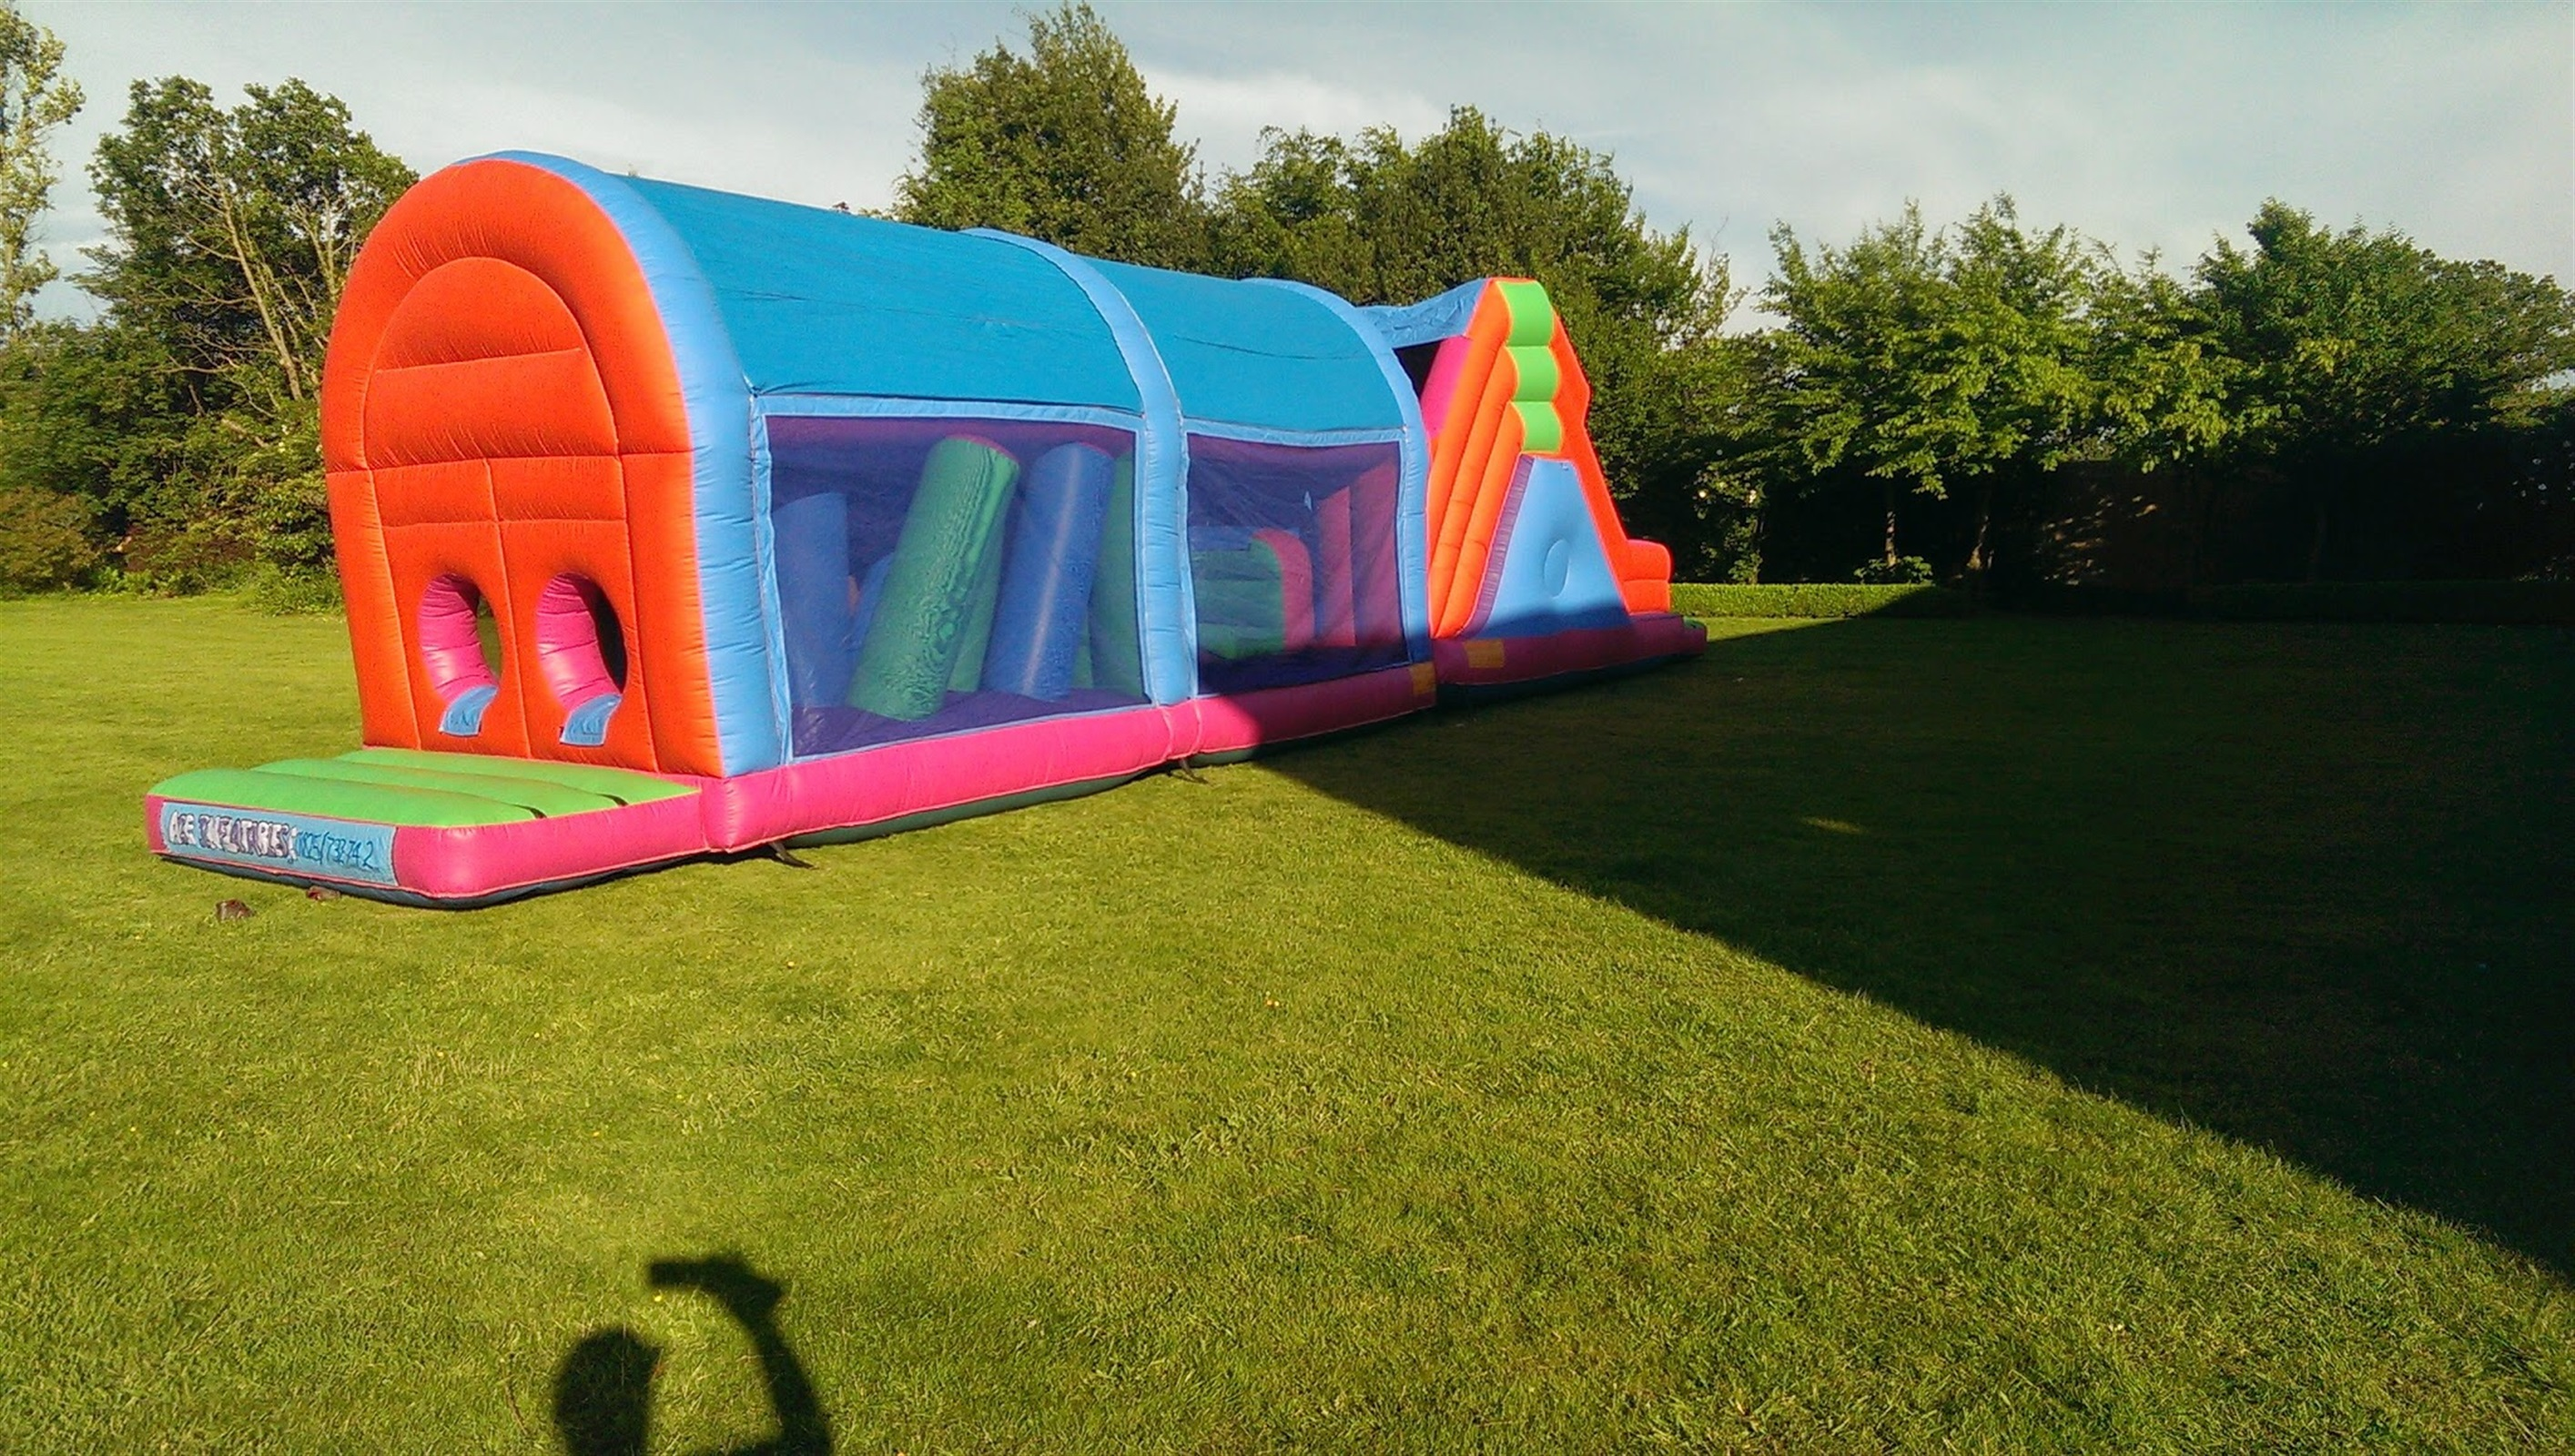 55ft Multicoloured Bouncy Assault Course Bouncy Castles Assault Courses Amp Soft Play Hire In